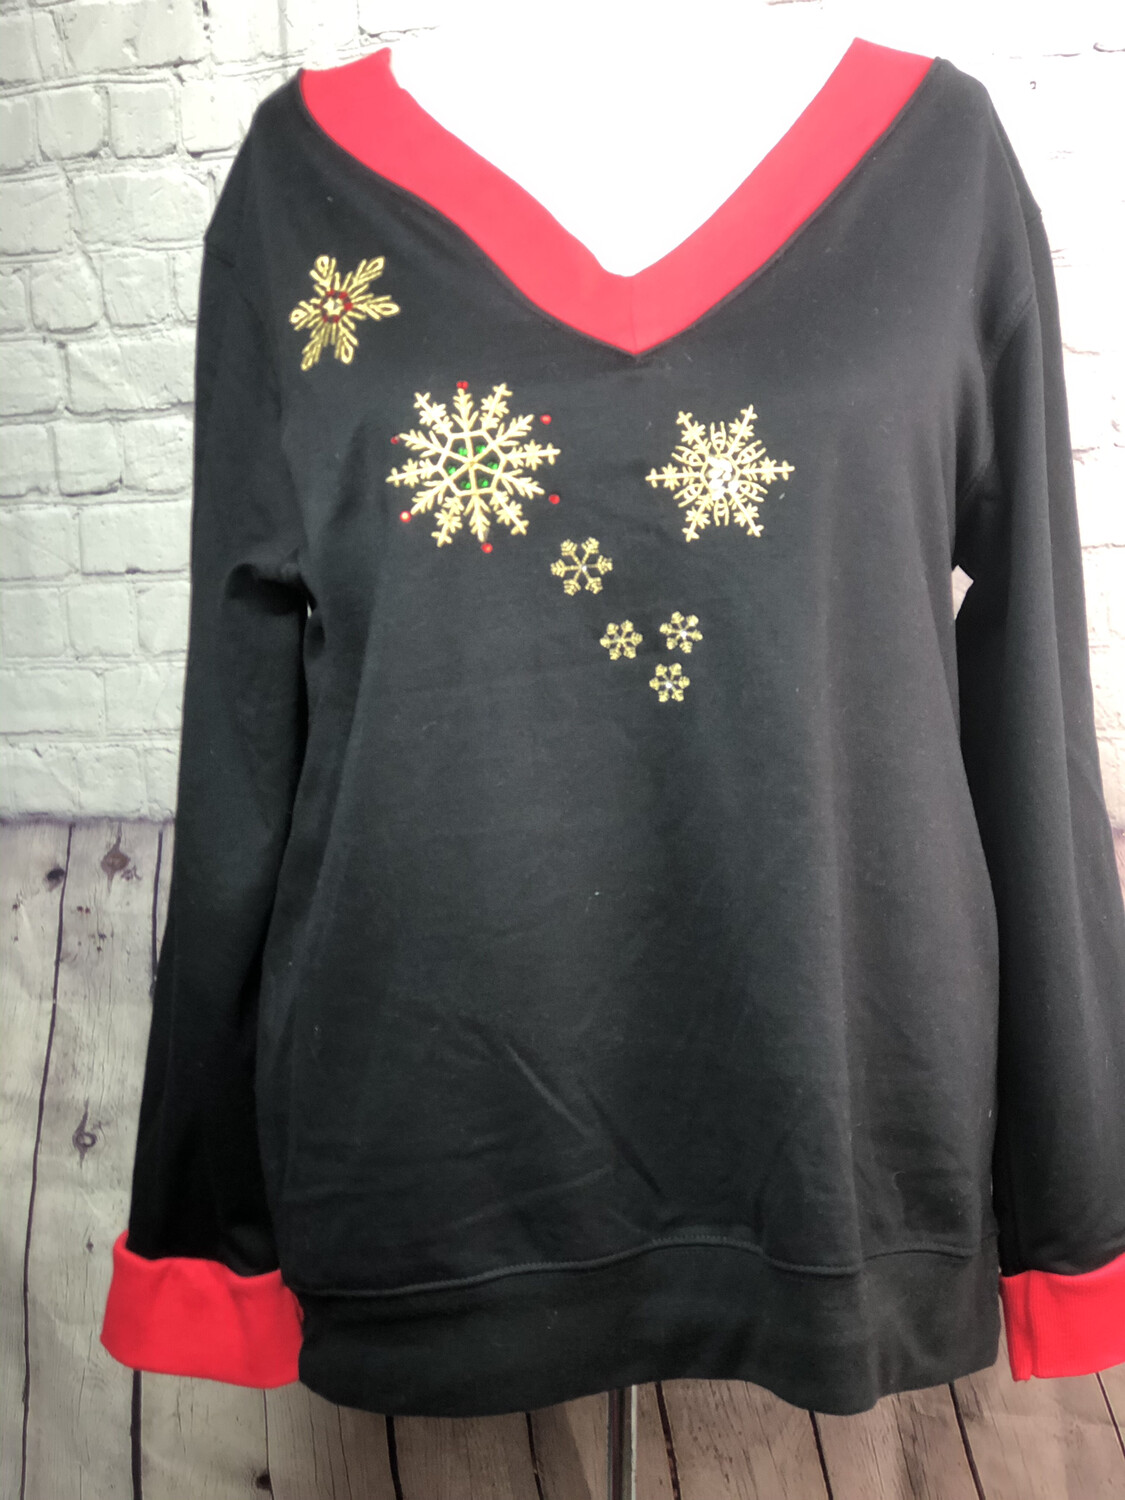 Christmas Recycled Material Sweatshirt Top S Threads Boutique Upcycled Repurposed Holiday Wearable Art OOAK Size XL